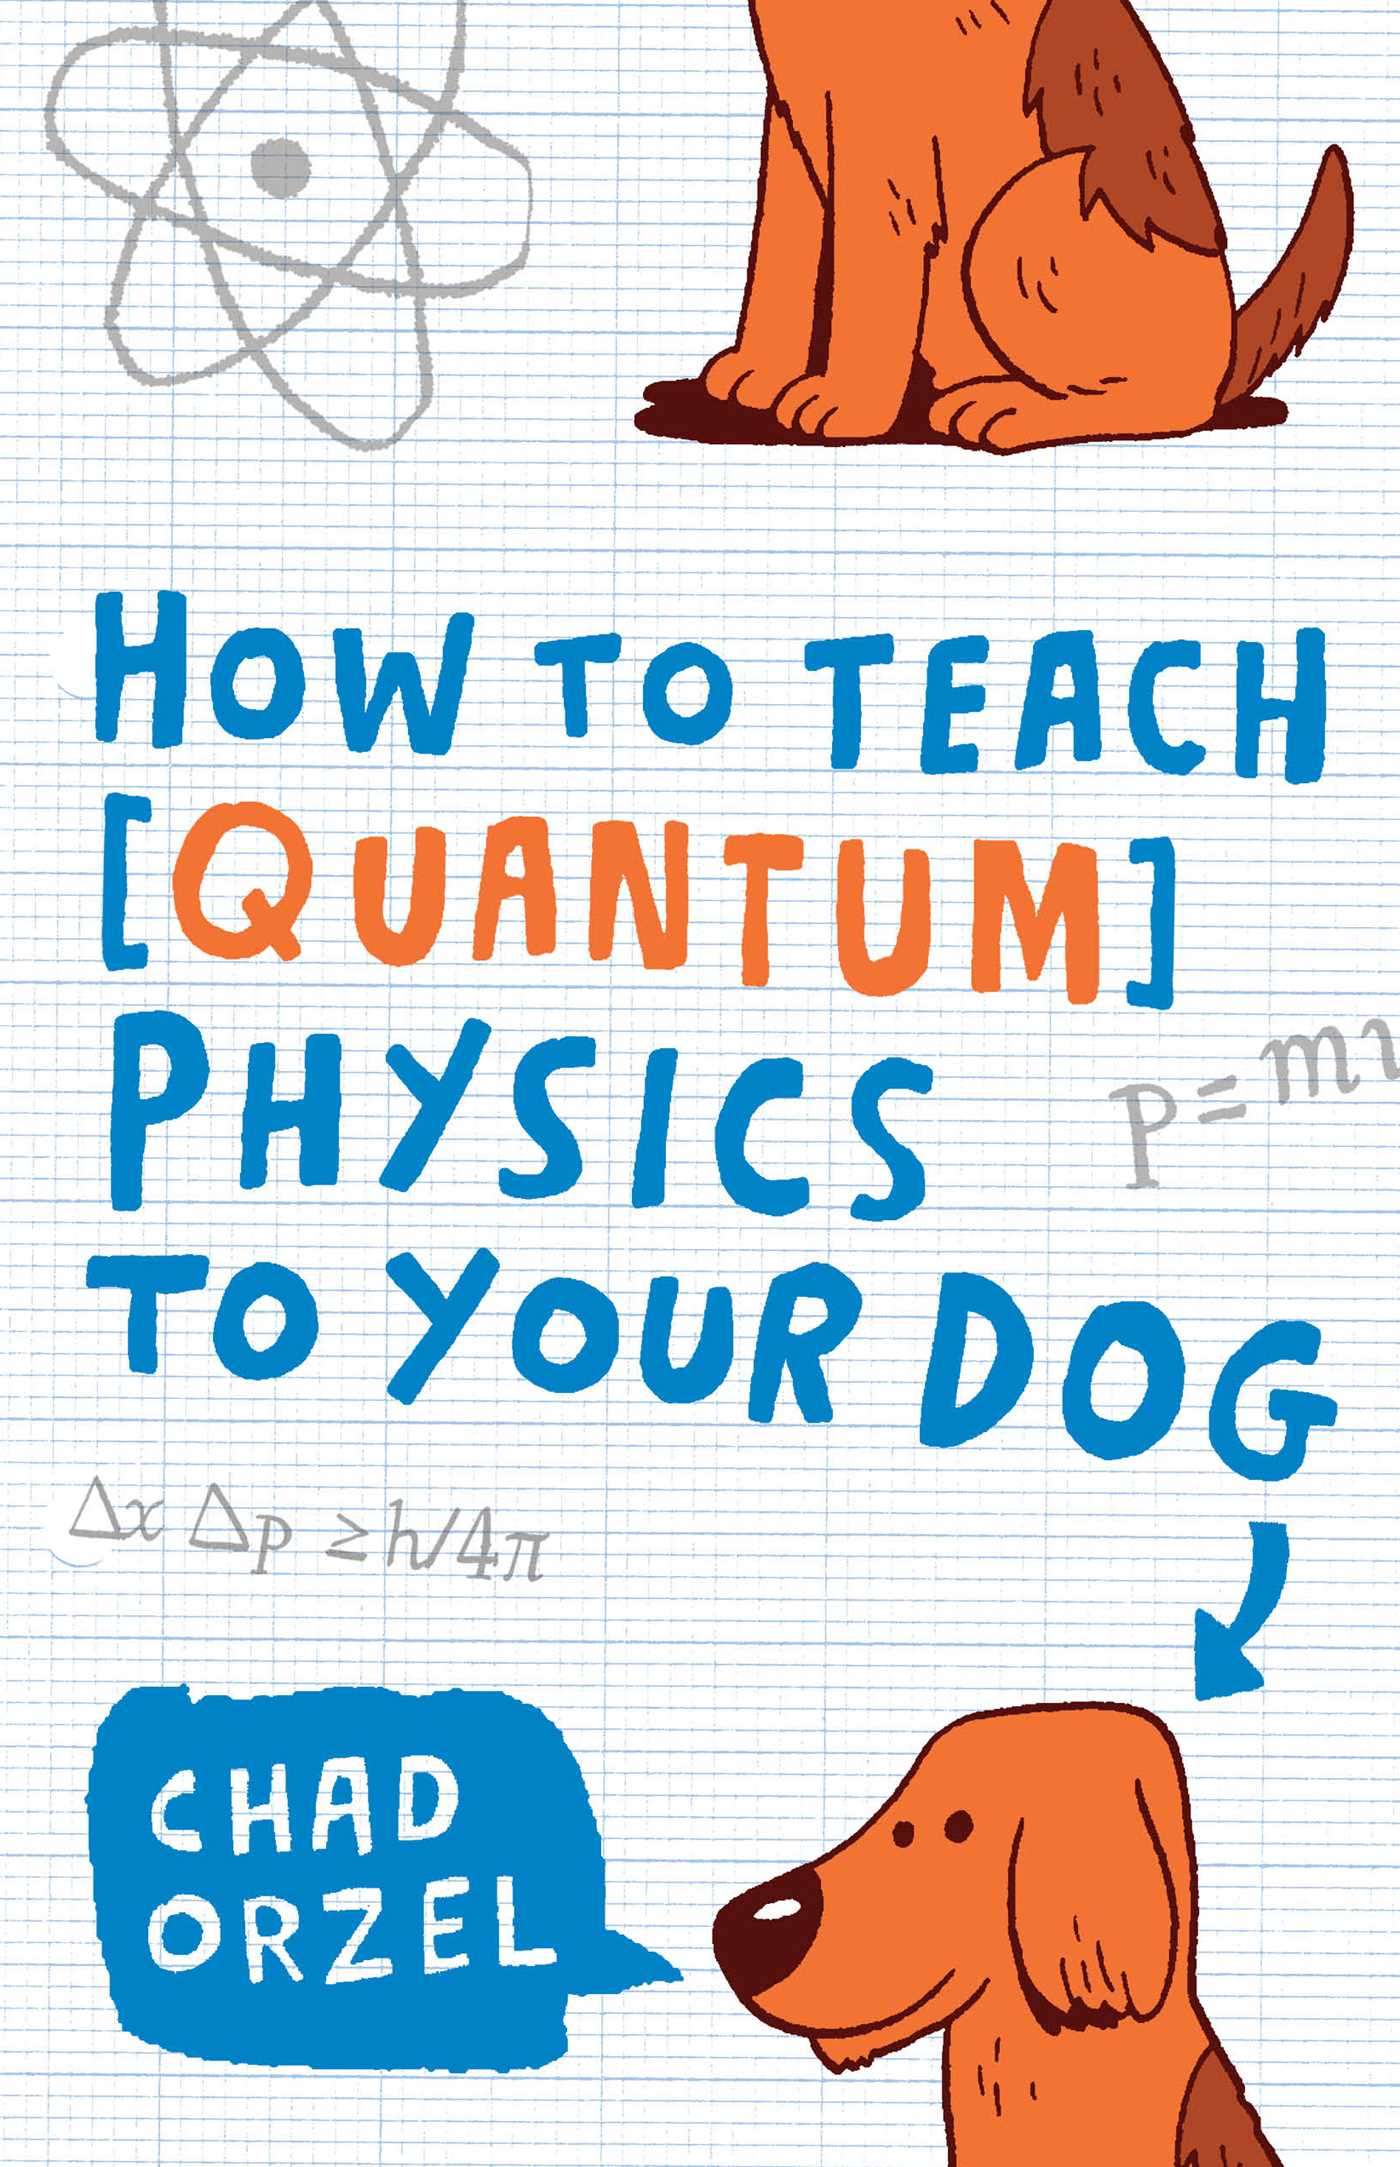 How-to-teach-quantum-physics-to-your-dog-9781416572299_hr